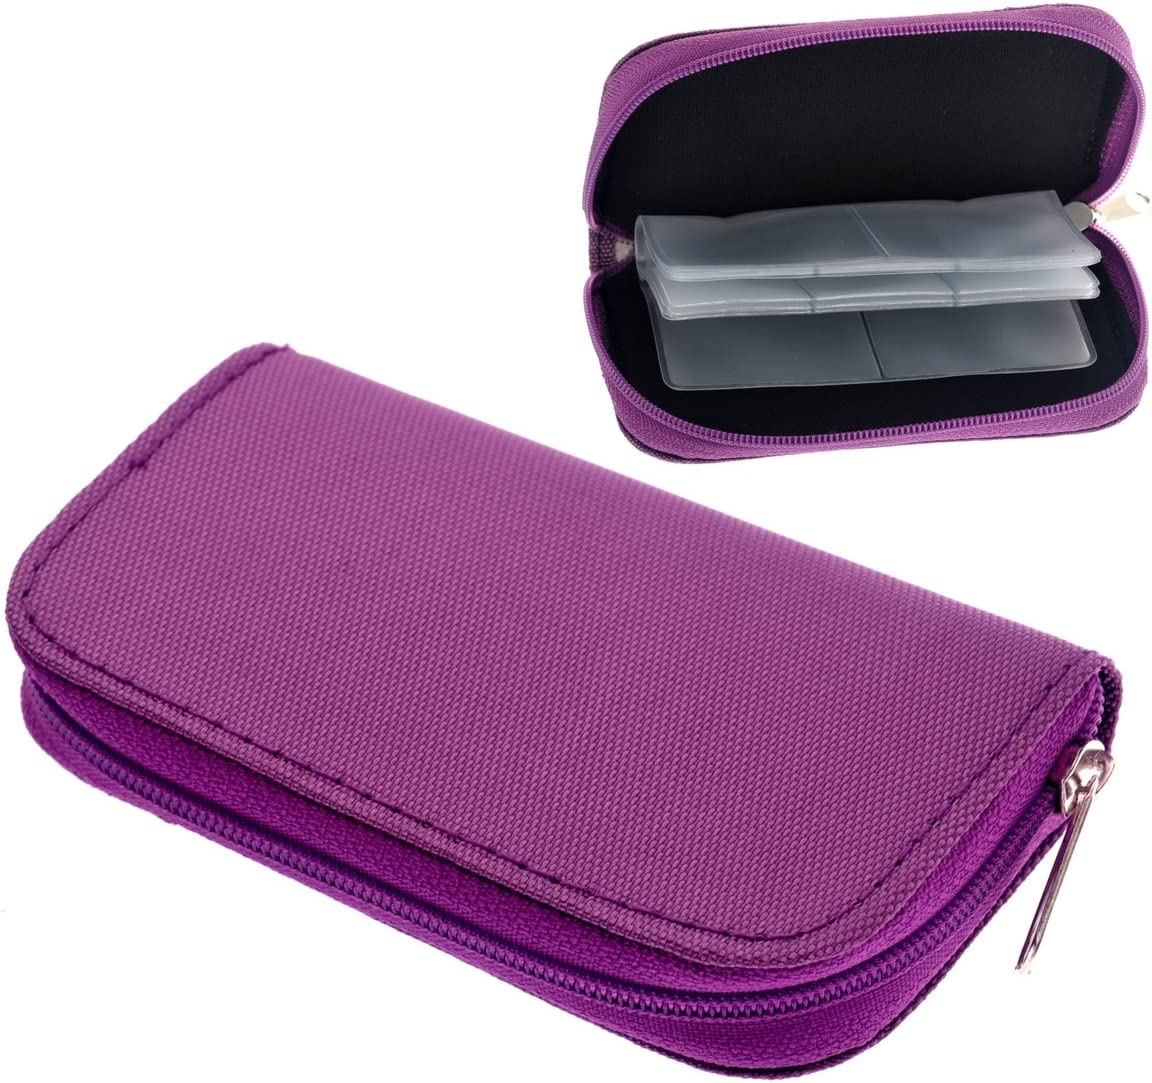 Purple Portable 22 Slots SD SDHC MMC CF Micro SD Memory Card Holder Pouch Case Zippered Storage Bag Protector